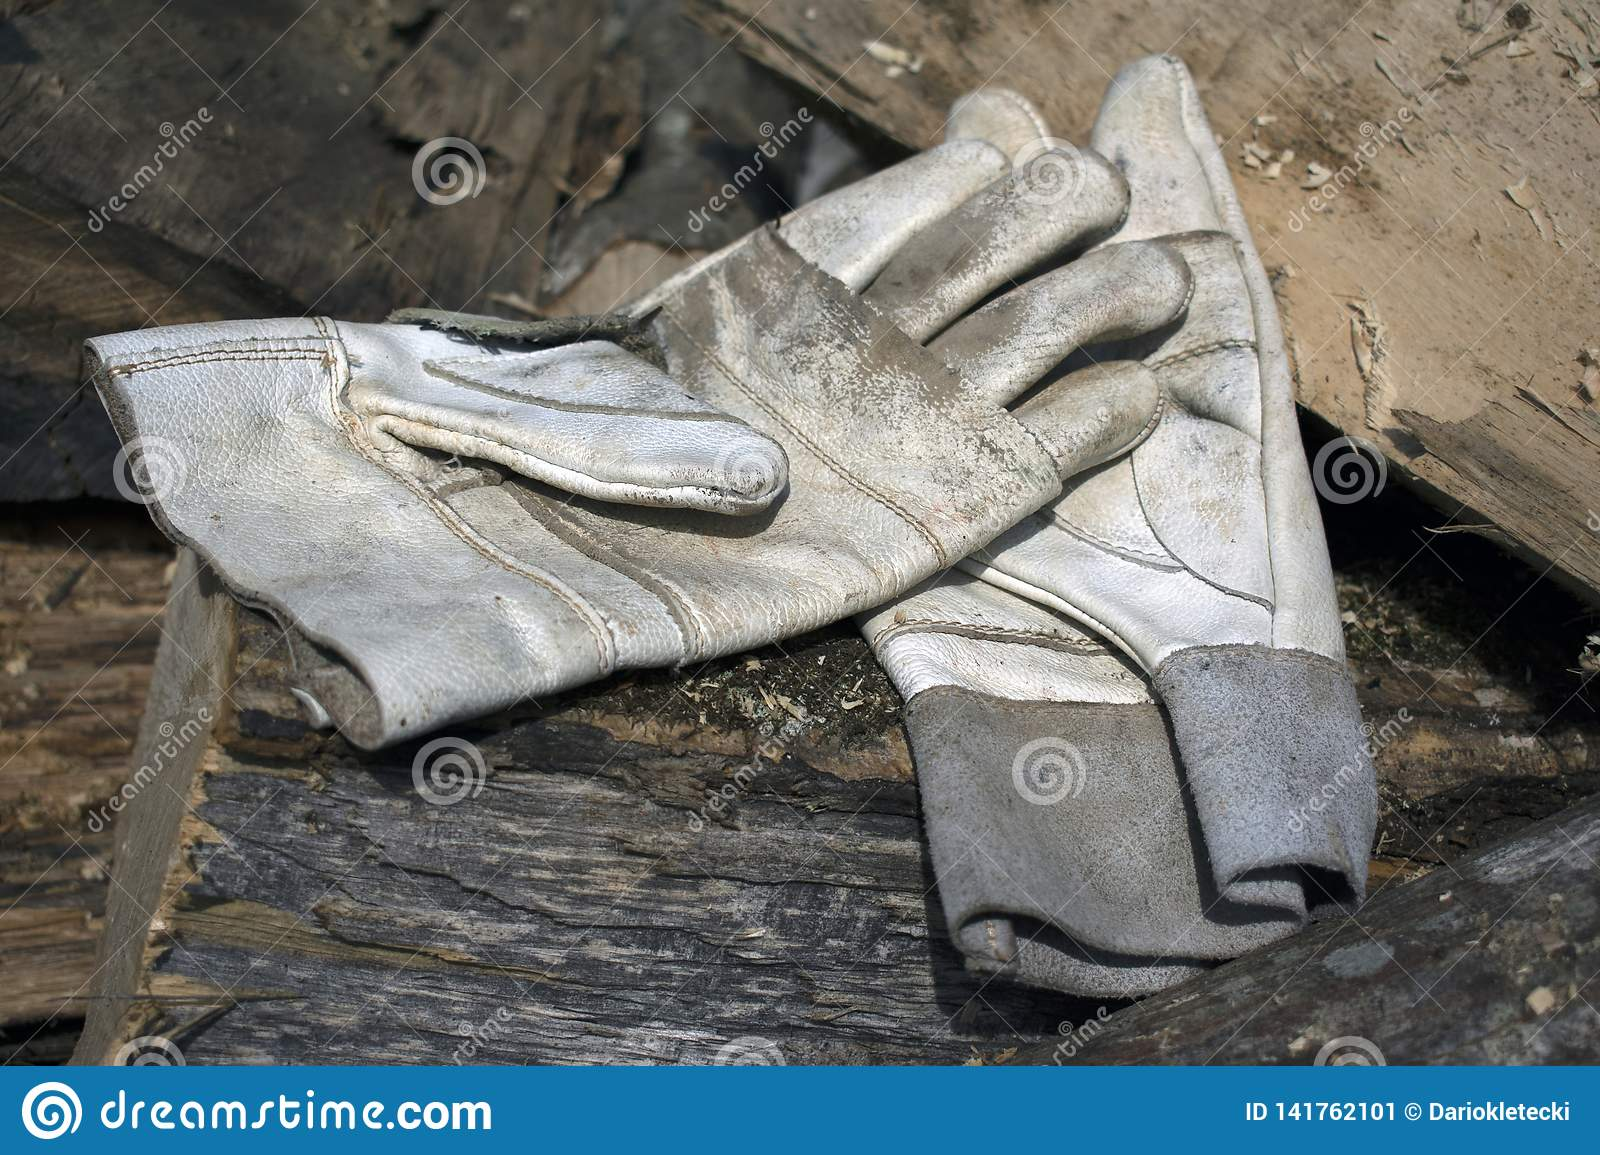 Leather working gloves on a pile of stumps